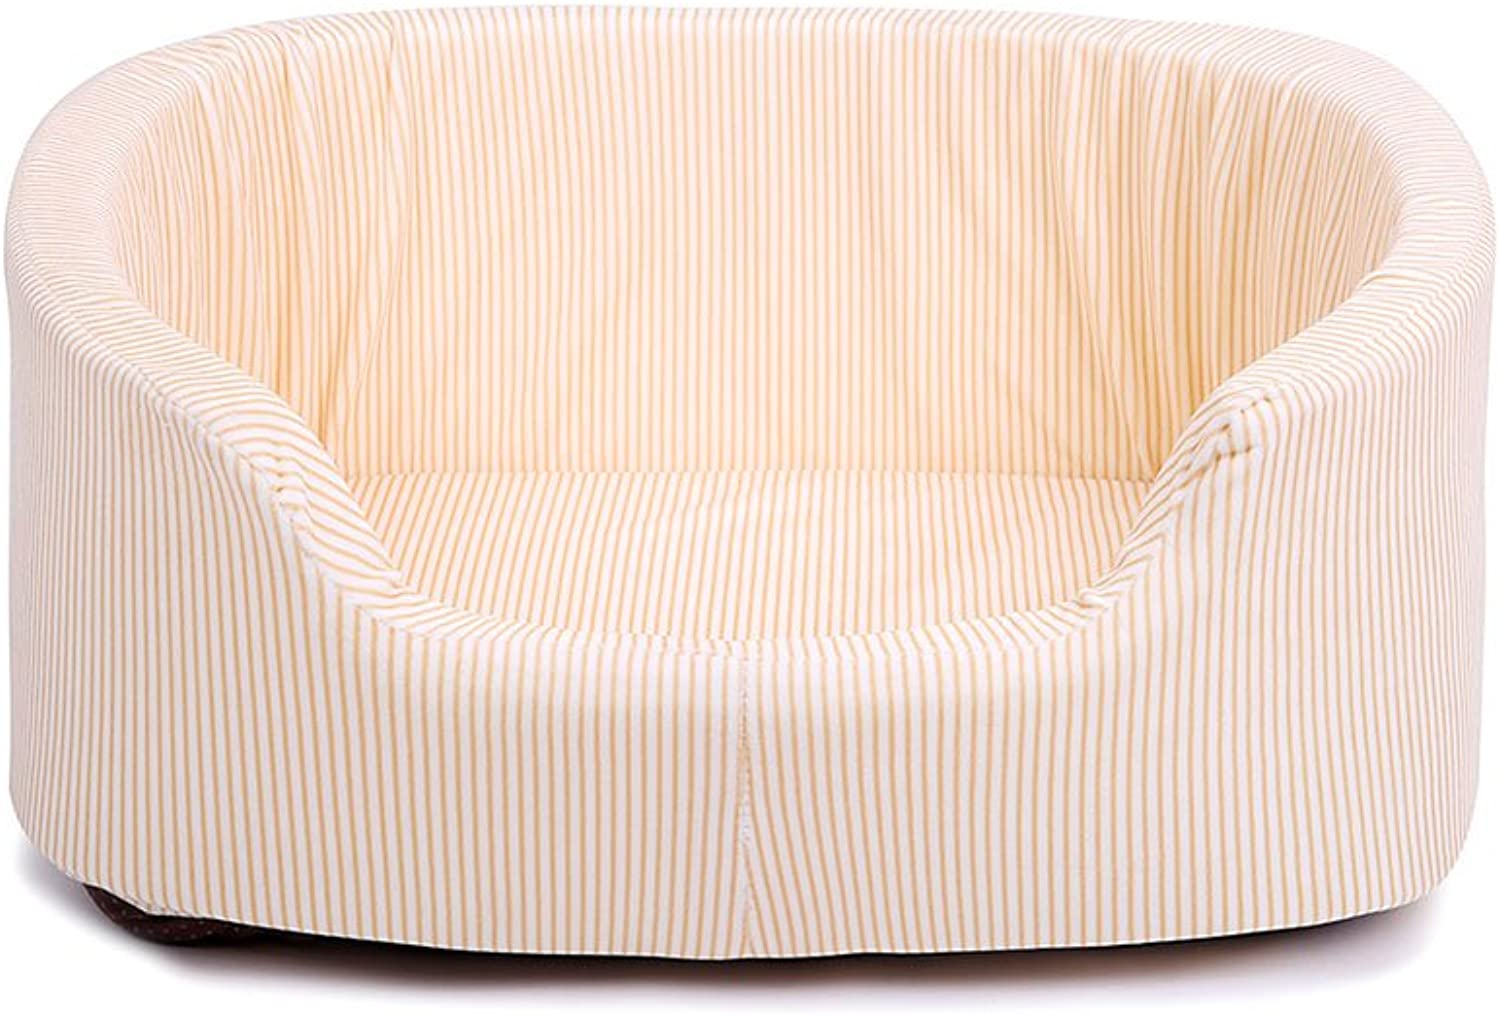 Pet Waterloo Pet nestDogs Bed House Pet Bed Sleeping Bag Pet sofa Cushion For Cats And Small Medium Dogs Best Pet Supplies Beige stripesS M (Size   S)